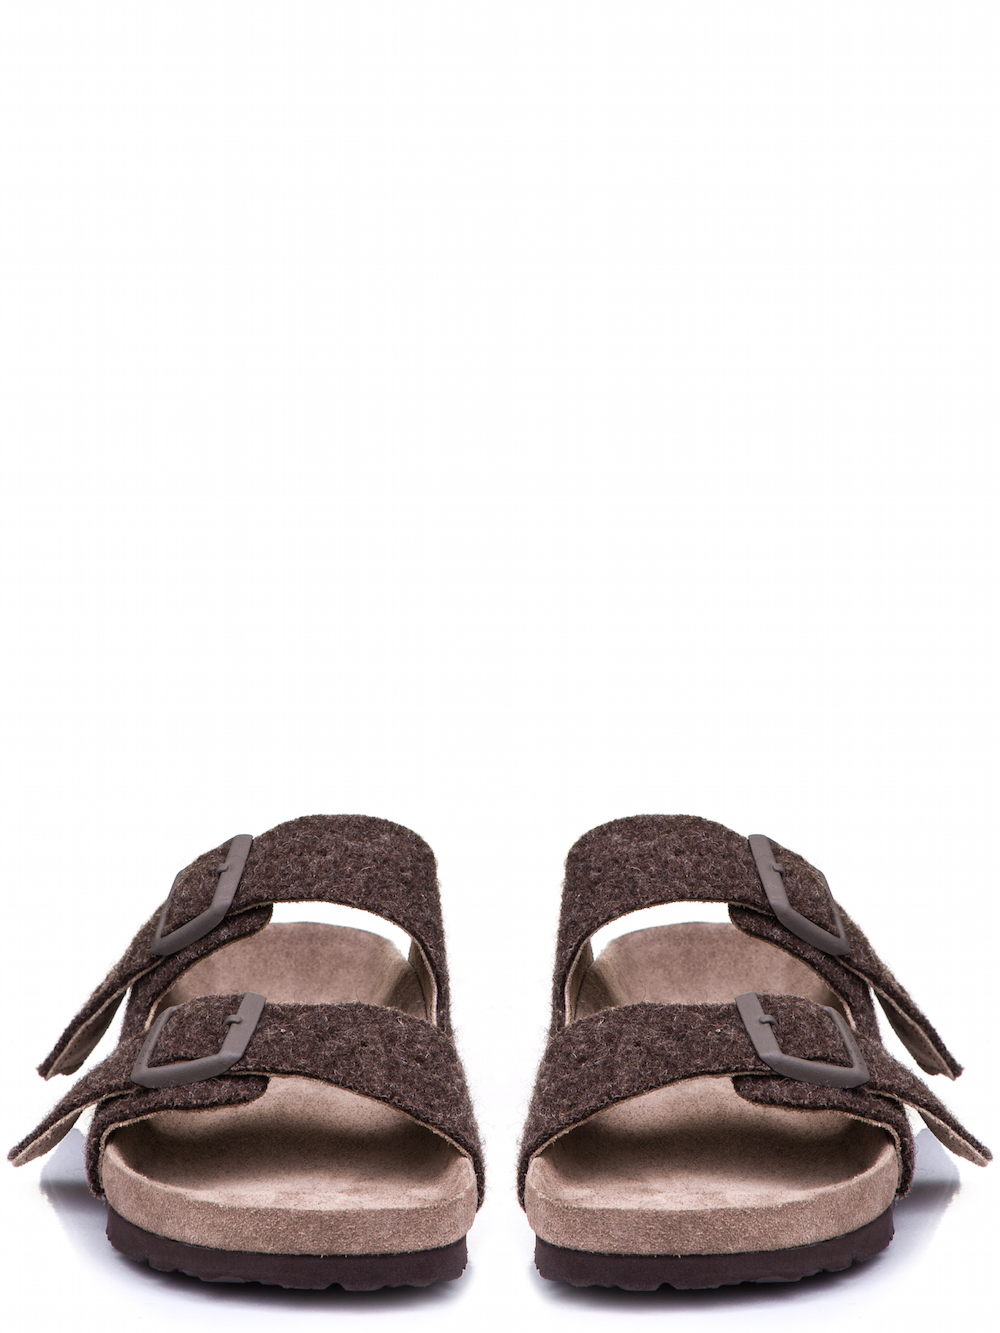 6d41726f23ee9d RICK OWENS X BIRKENSTOCK ARIZONA SANDAL IN BROWN